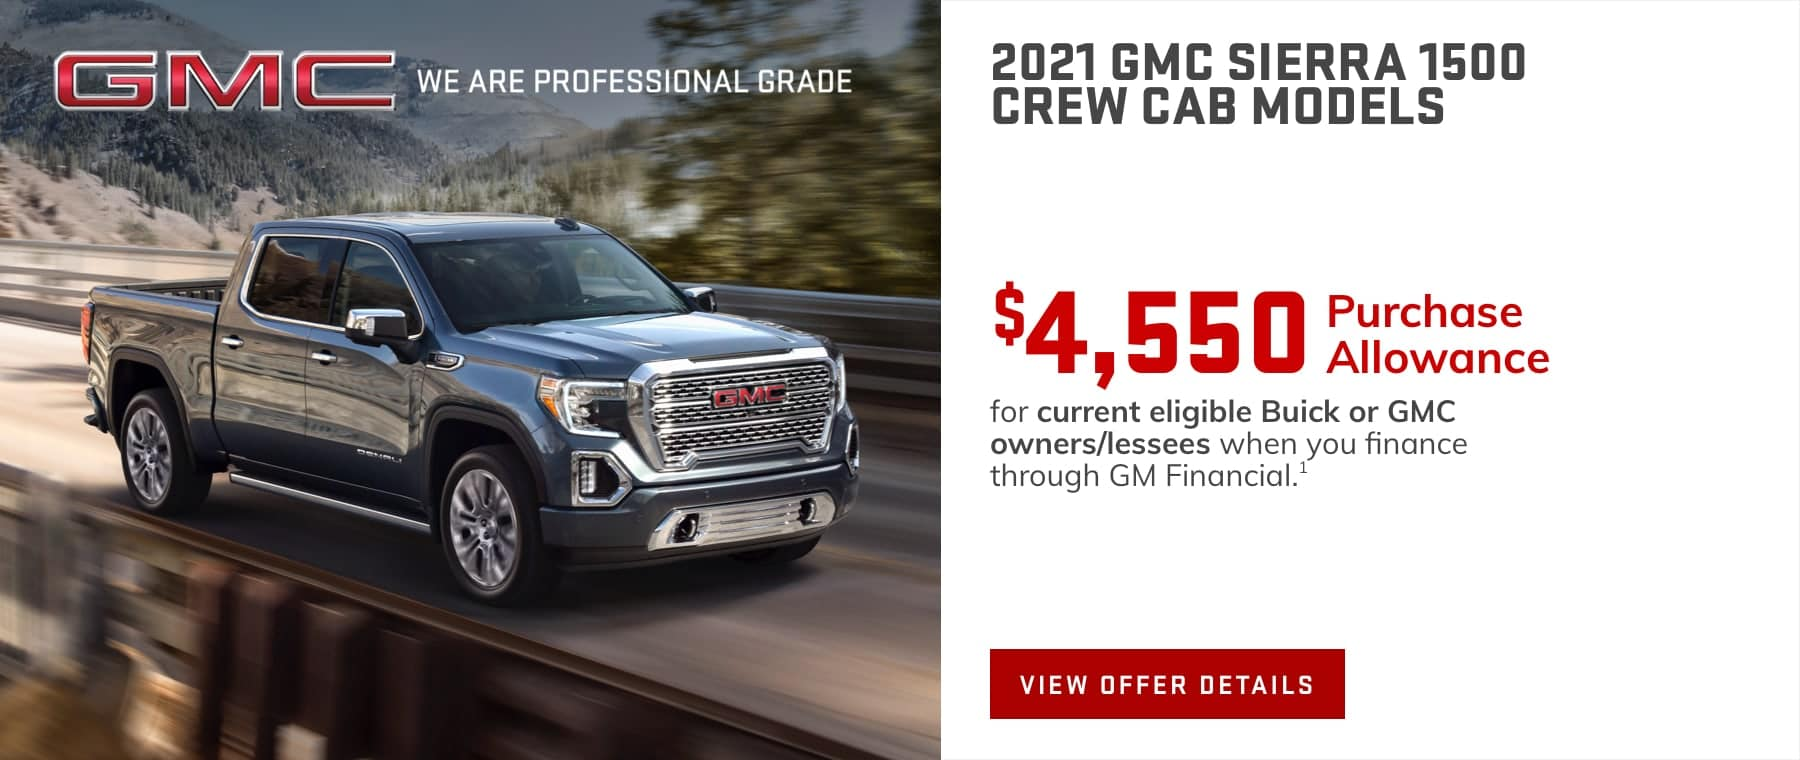 $4,550 Purchase Allowance for current eligible Buick or GMC owners/lessees when you finance through GM Financial.1